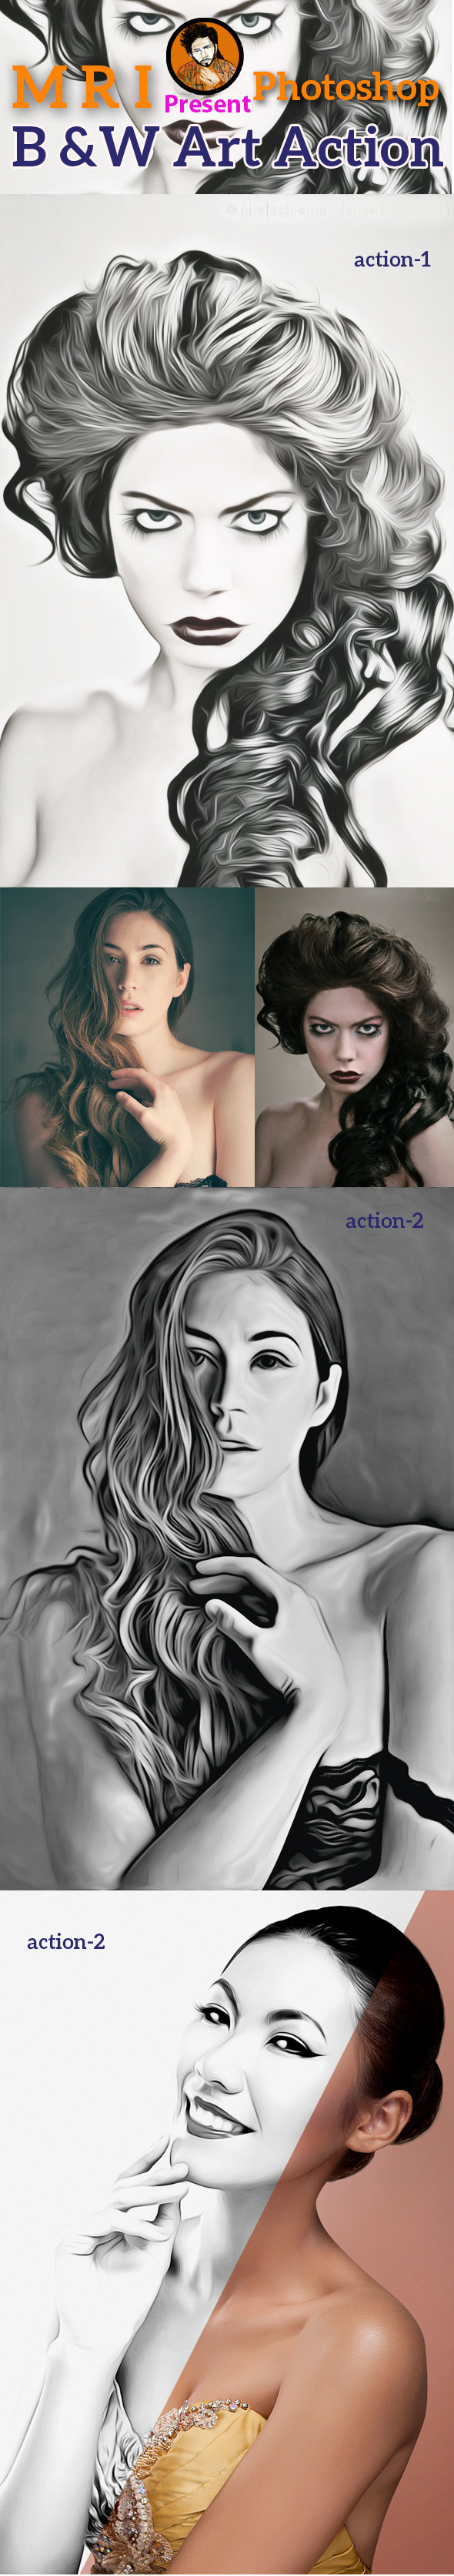 B&W Art Action - Actions Photoshop